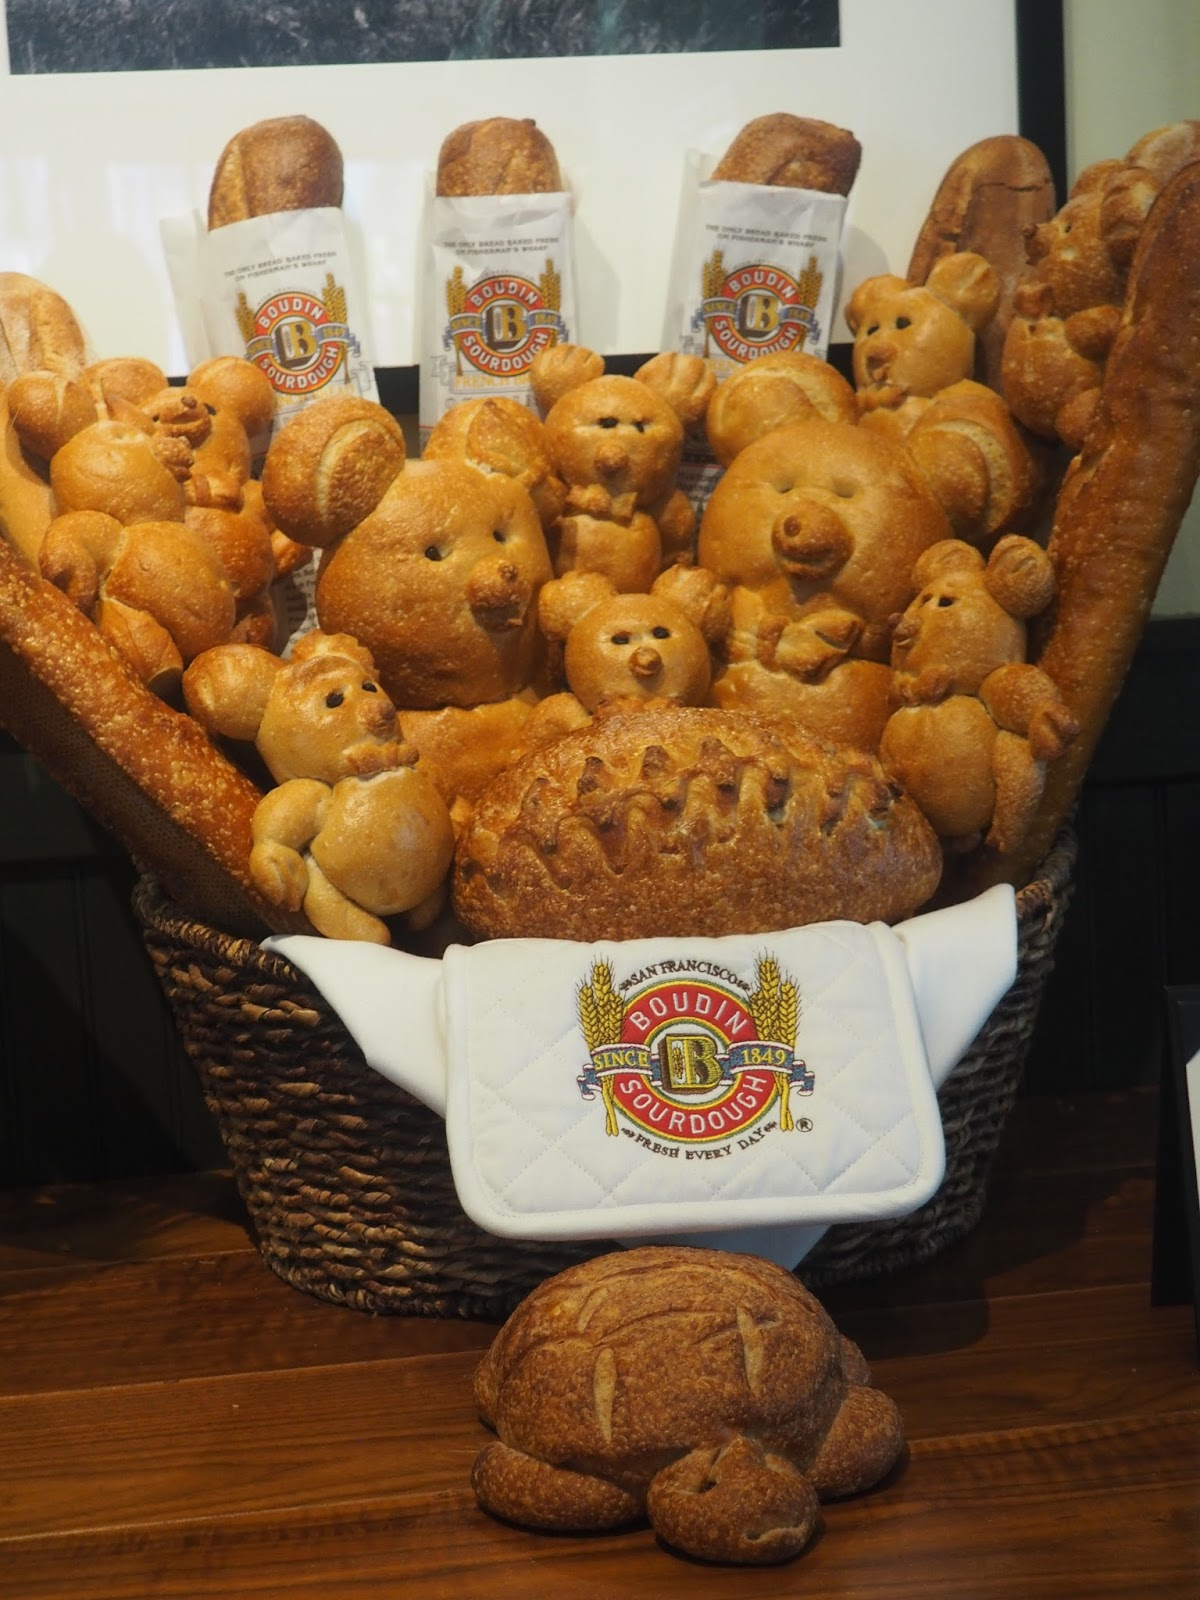 San Francisco sourdough bread - teddies and other shapes